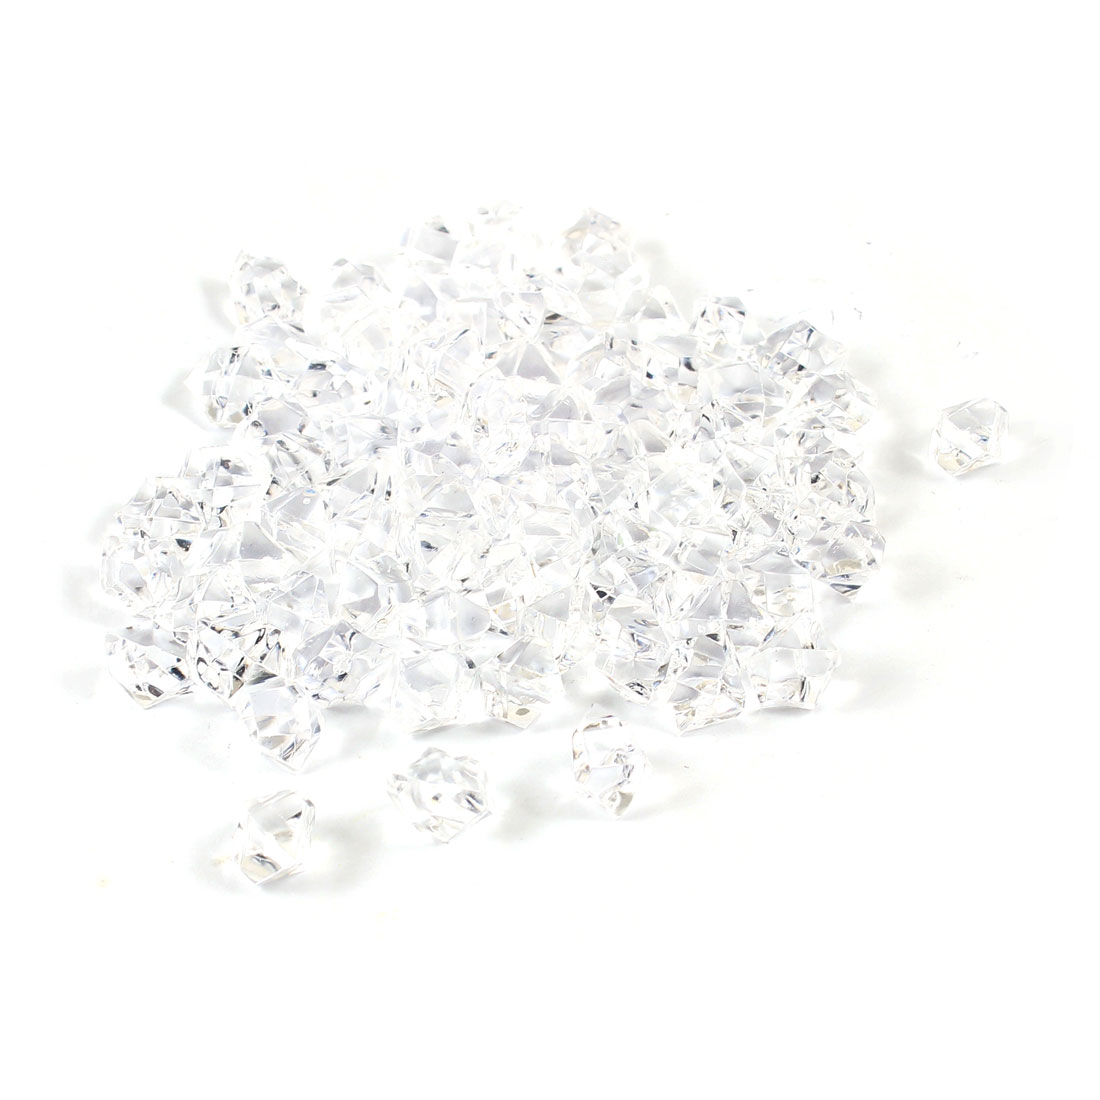 80 Pcs Clear Plastic Irregular Crystal Stone Aquarium Ornament by